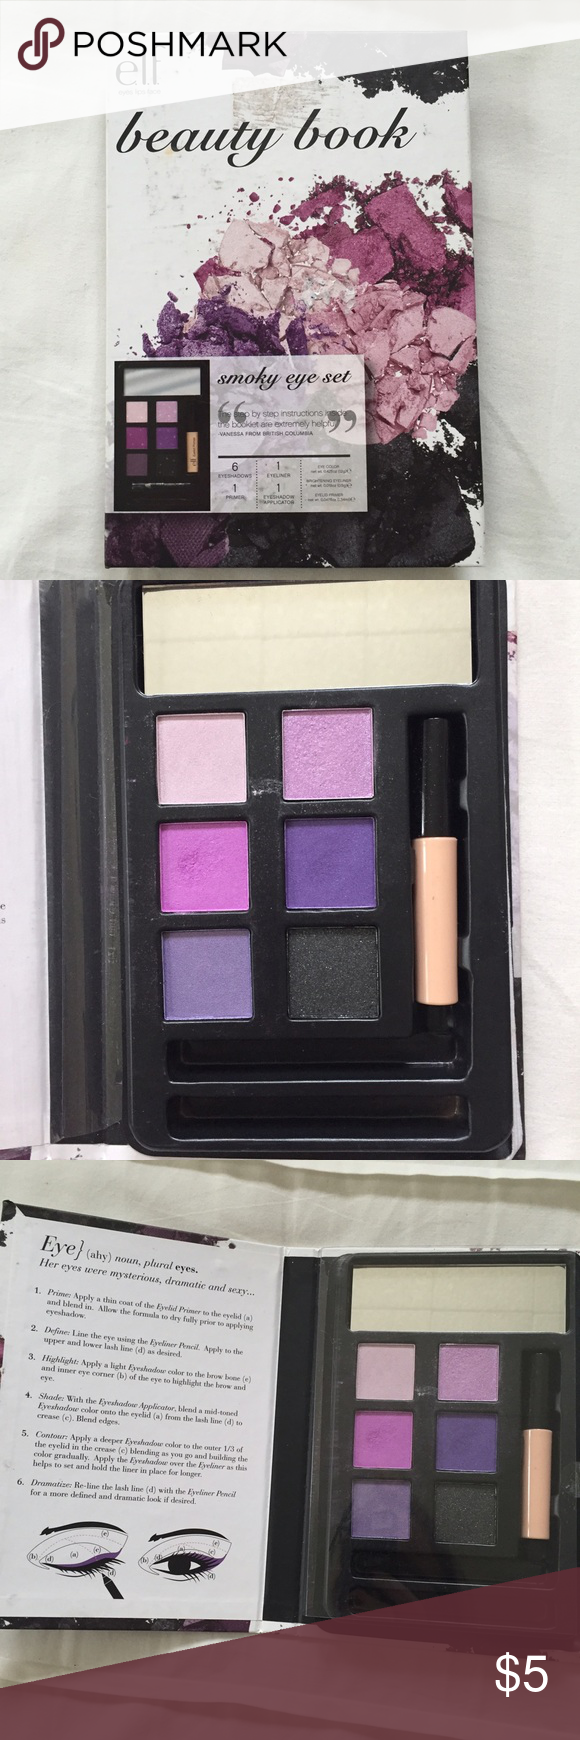 e.l.f. Smokey Eye Beauty Book Eyeshadow set with 6 shades, built in mirror, and eyeshadow primer• does not include the applicator or eye pencil• This was only (very lightly) used one time ELF Makeup Eyeshadow